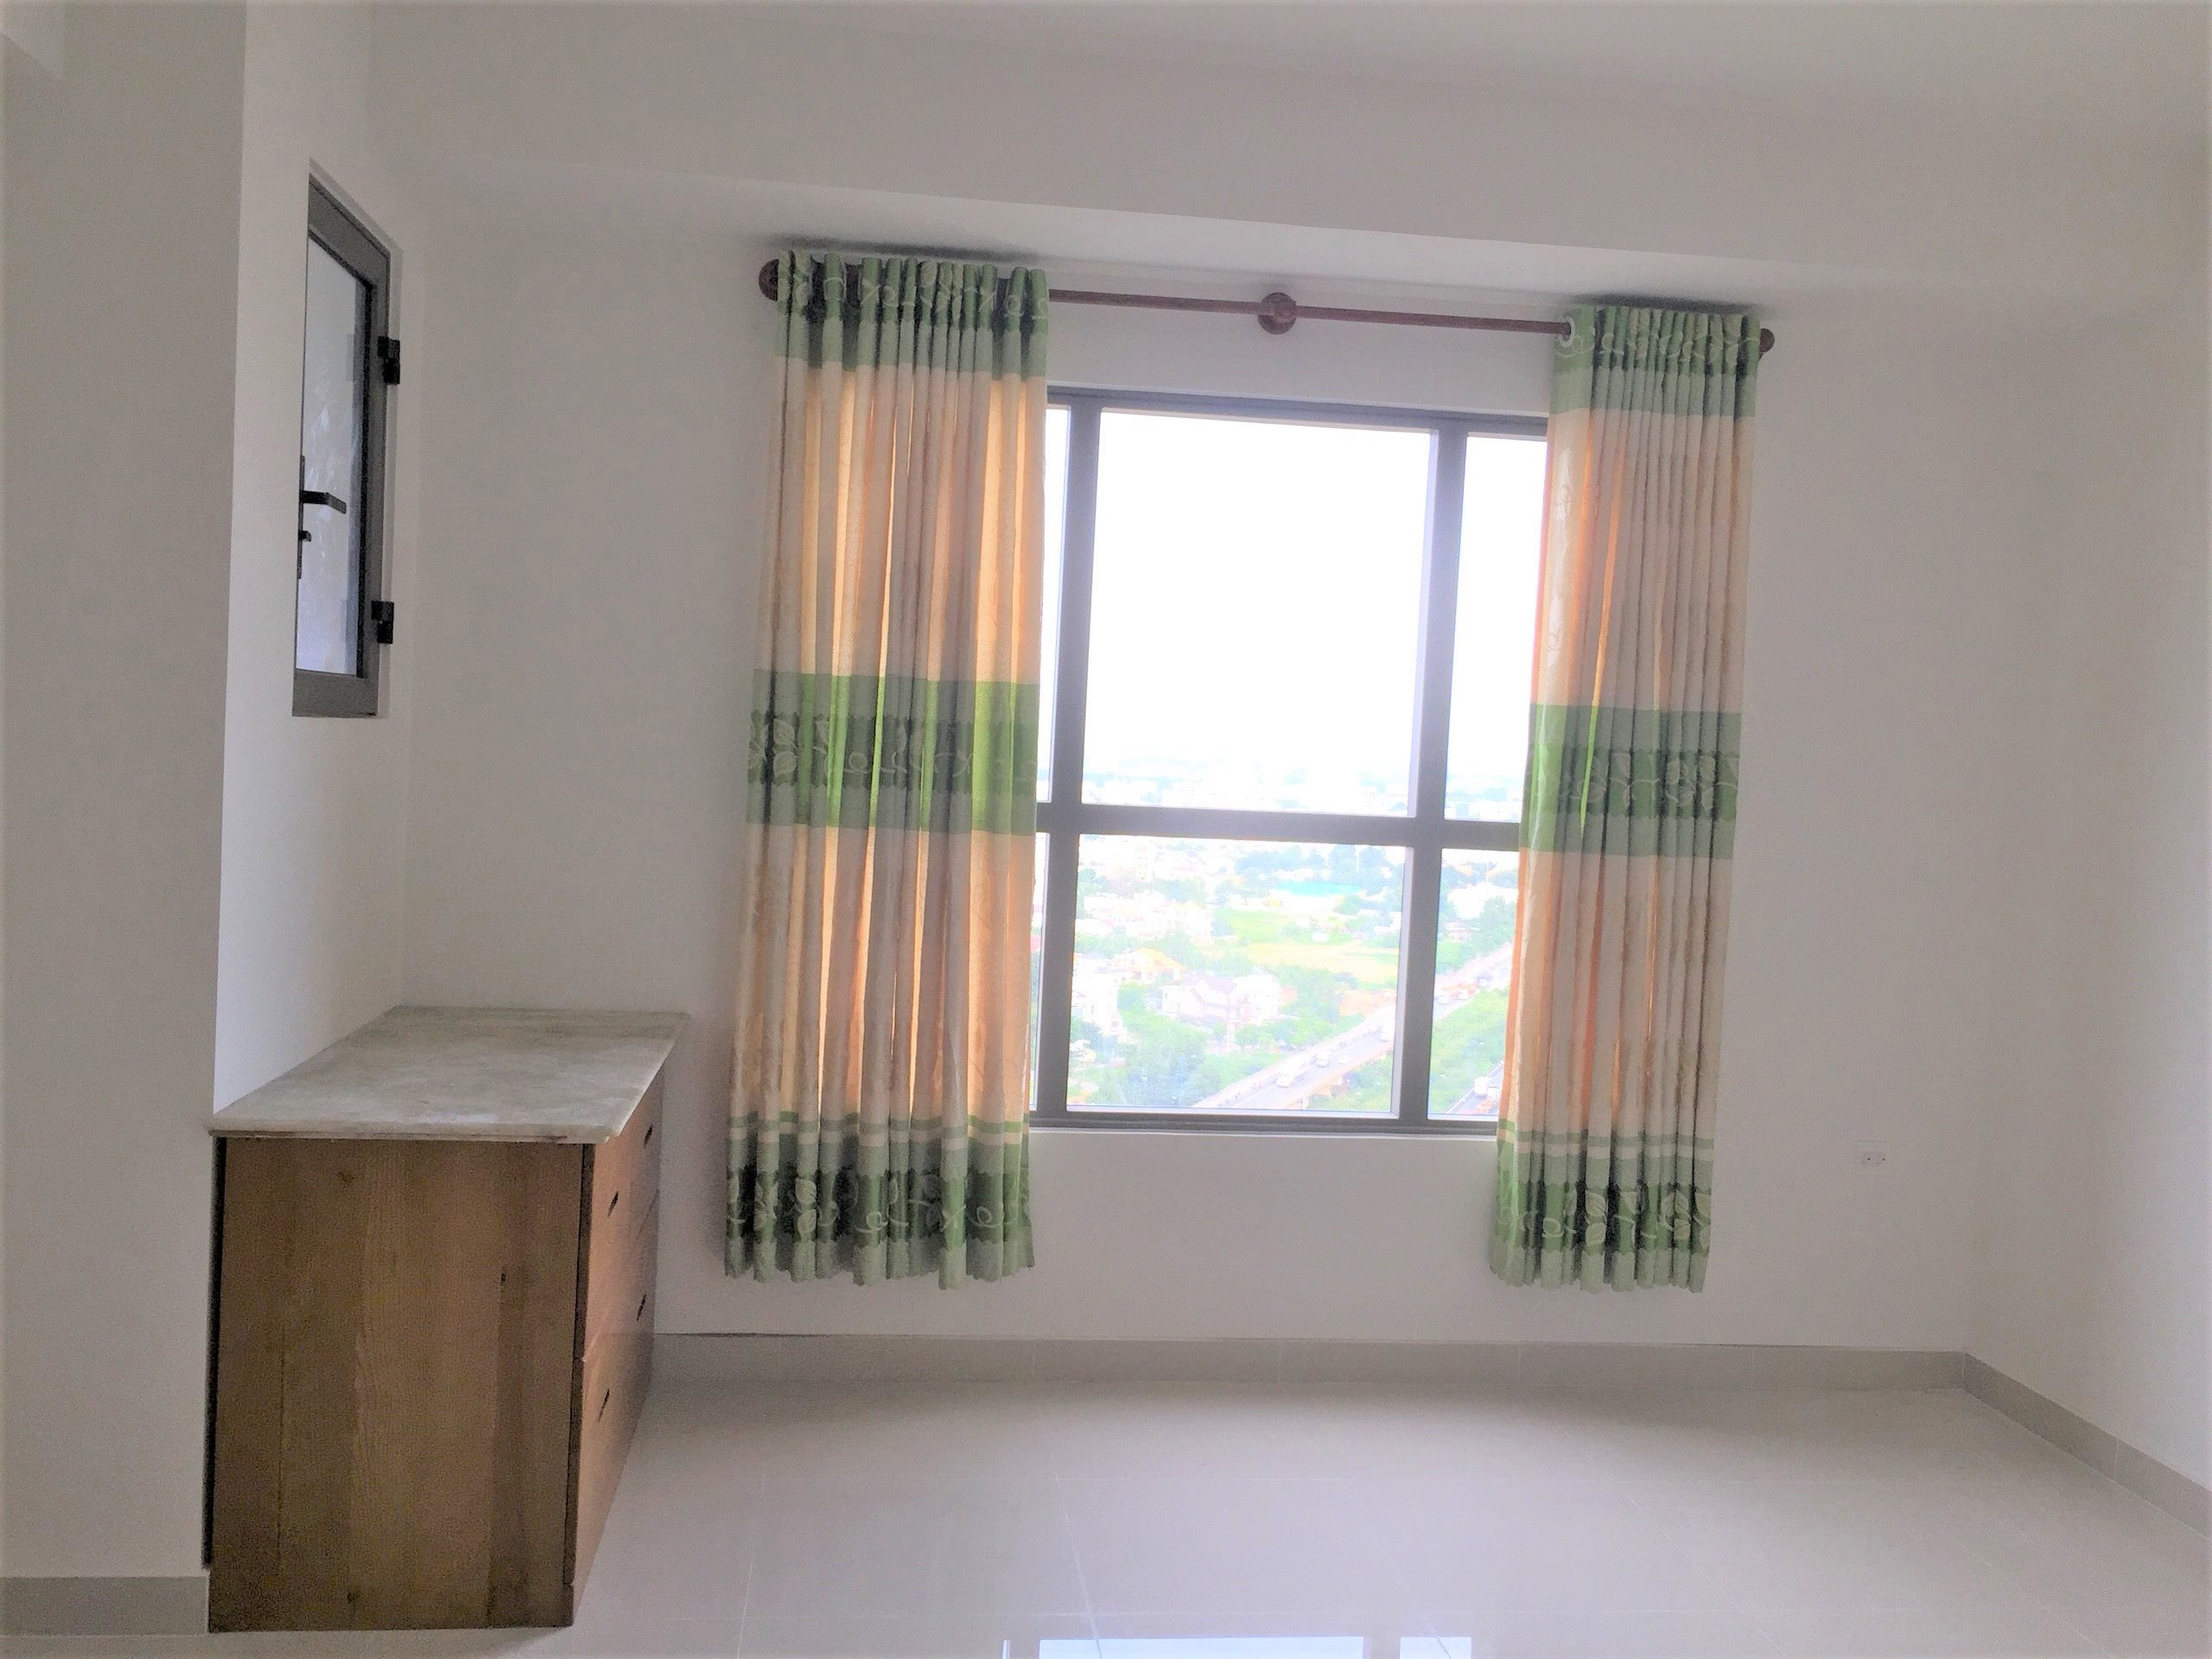 D227013 - APARTMENT FOR RENT - THE SUN AVENUE - 1 bedroom